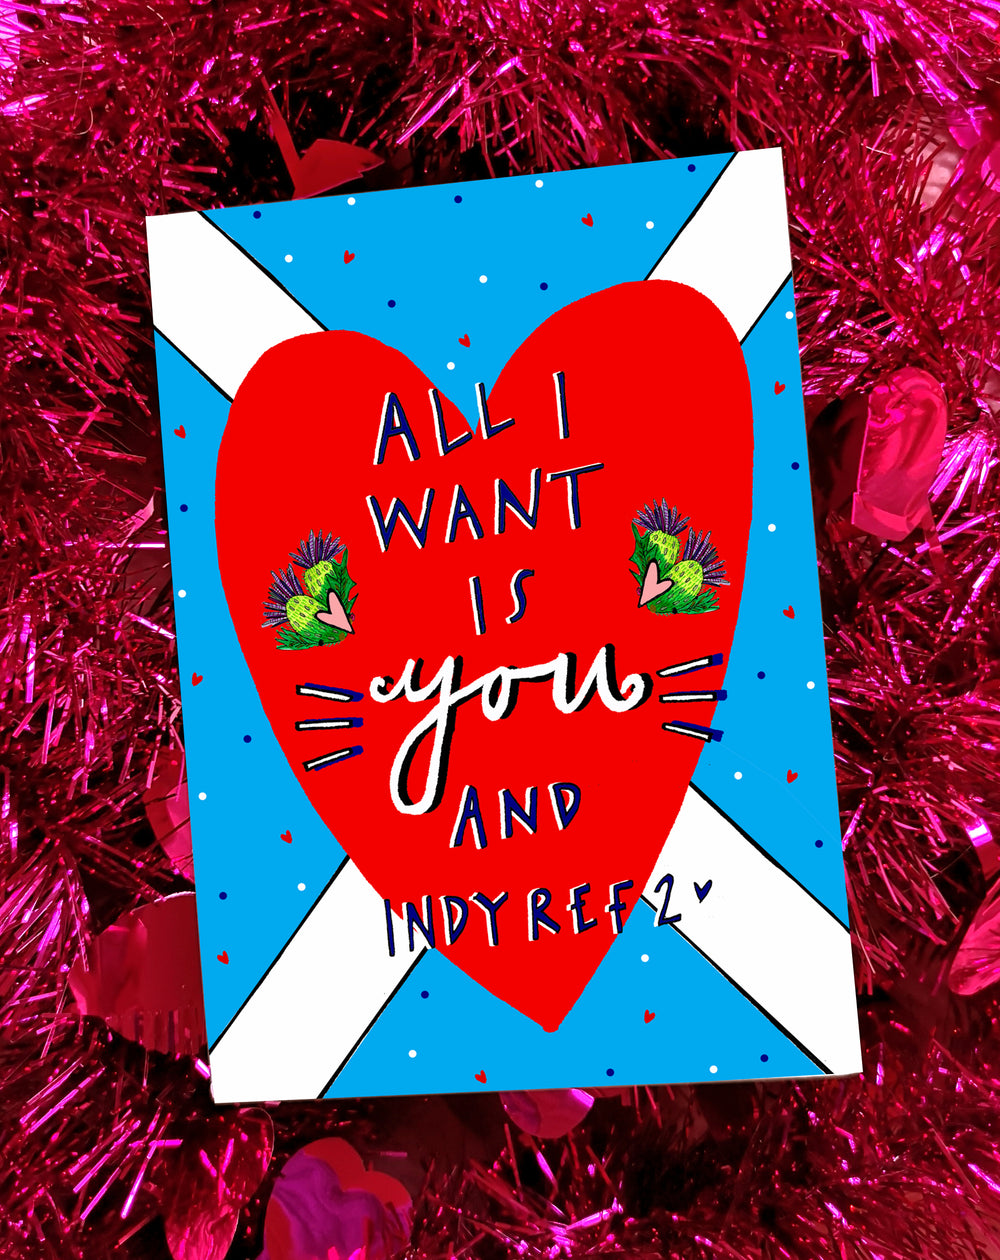 All I want is YOU and INDY REF 2! Valentines Greetings Card